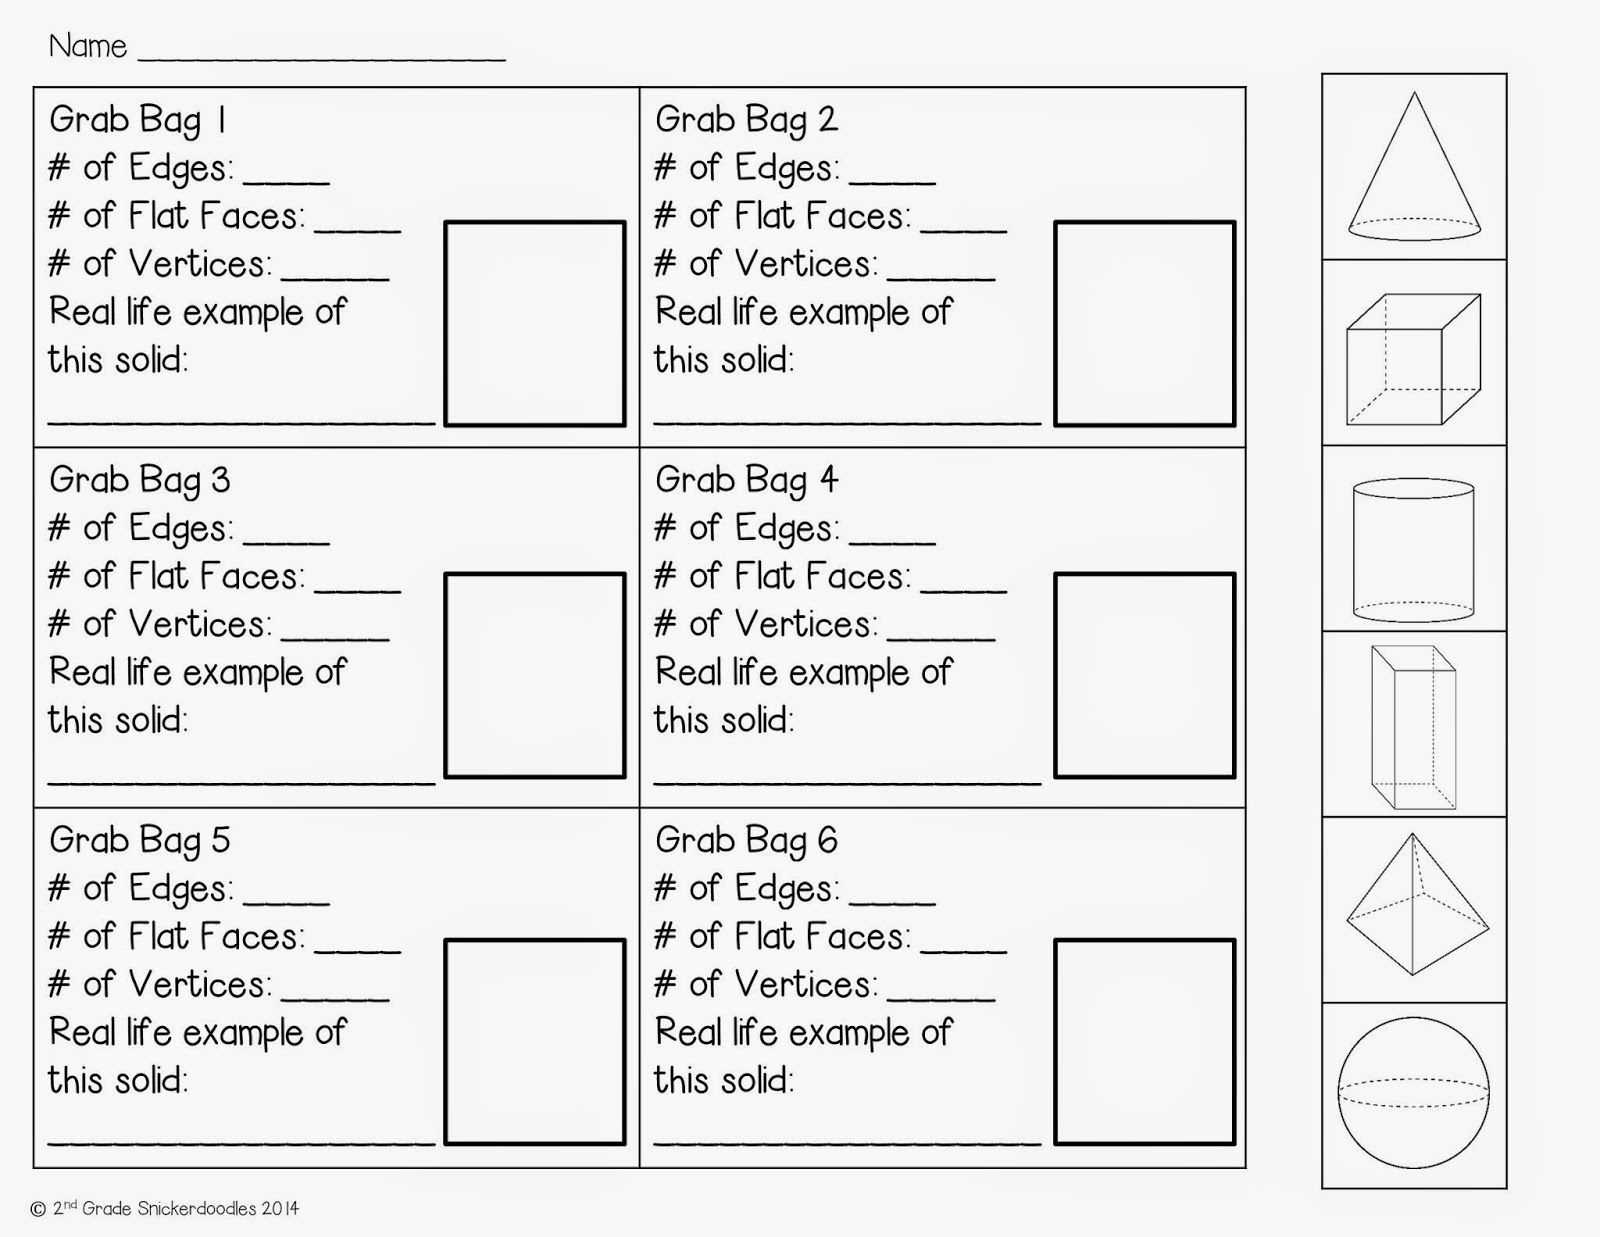 2nd Grade Snickerdoodles Geometric Solids Grab Bag Activity With Free Recording Sheet